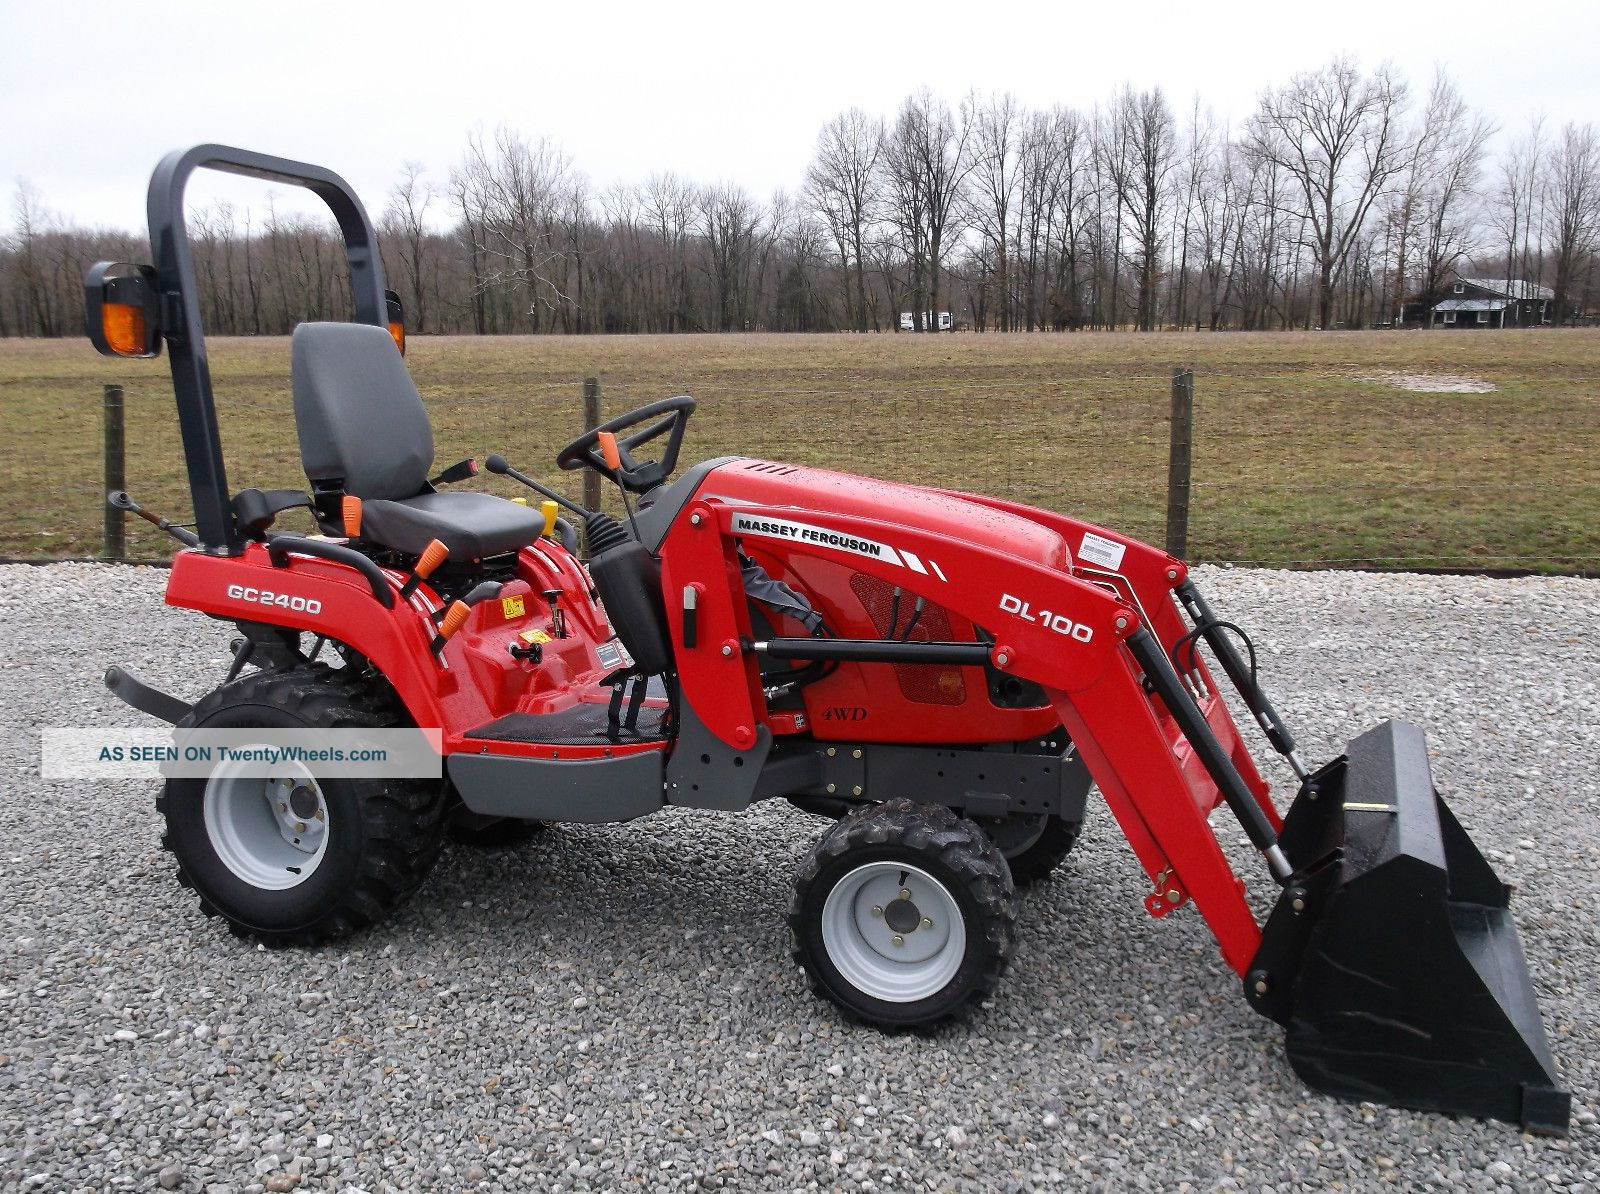 2012 Massey Ferguson Gc 2400 Compact Tractor & Front Loader - 4x4 Tractors photo